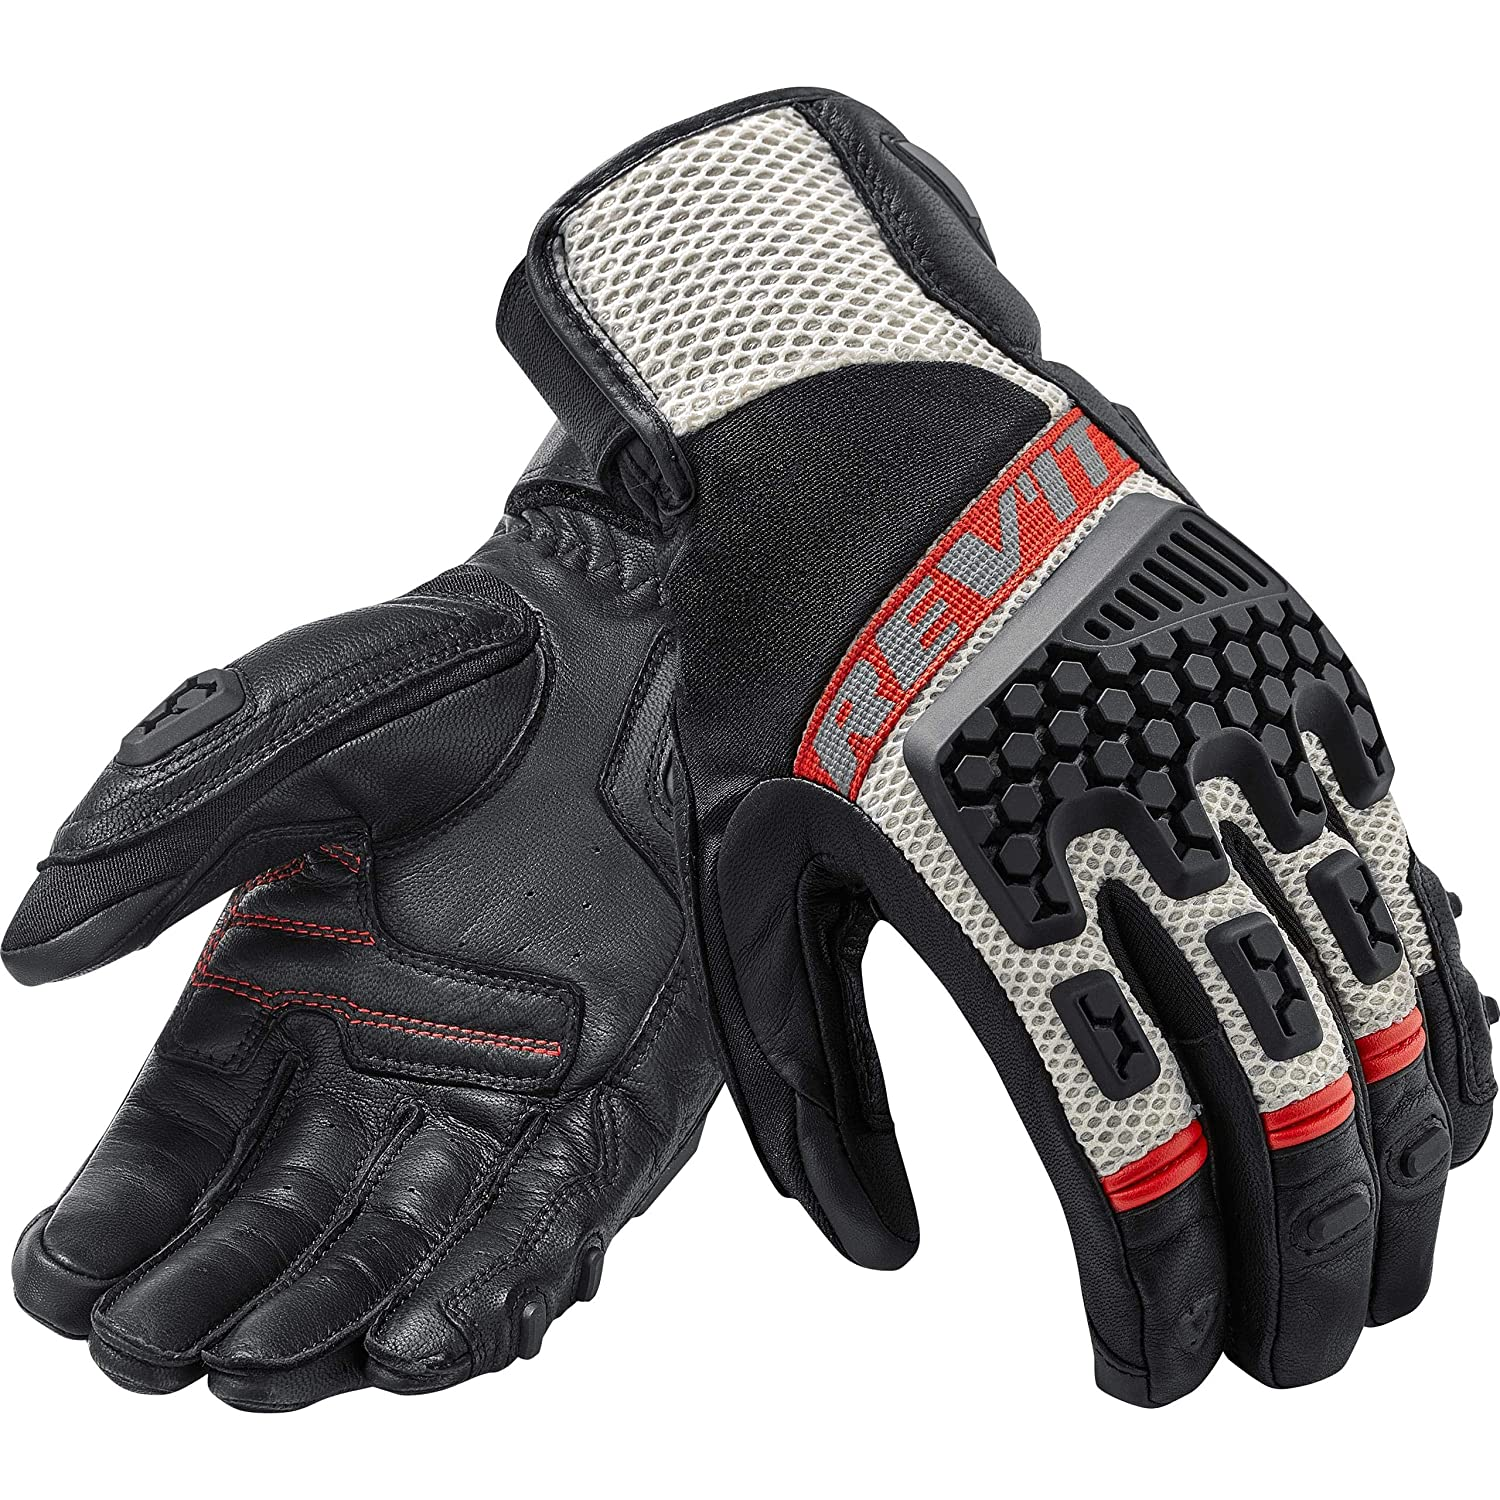 Rev It Sand 3 Motorcycle Gloves